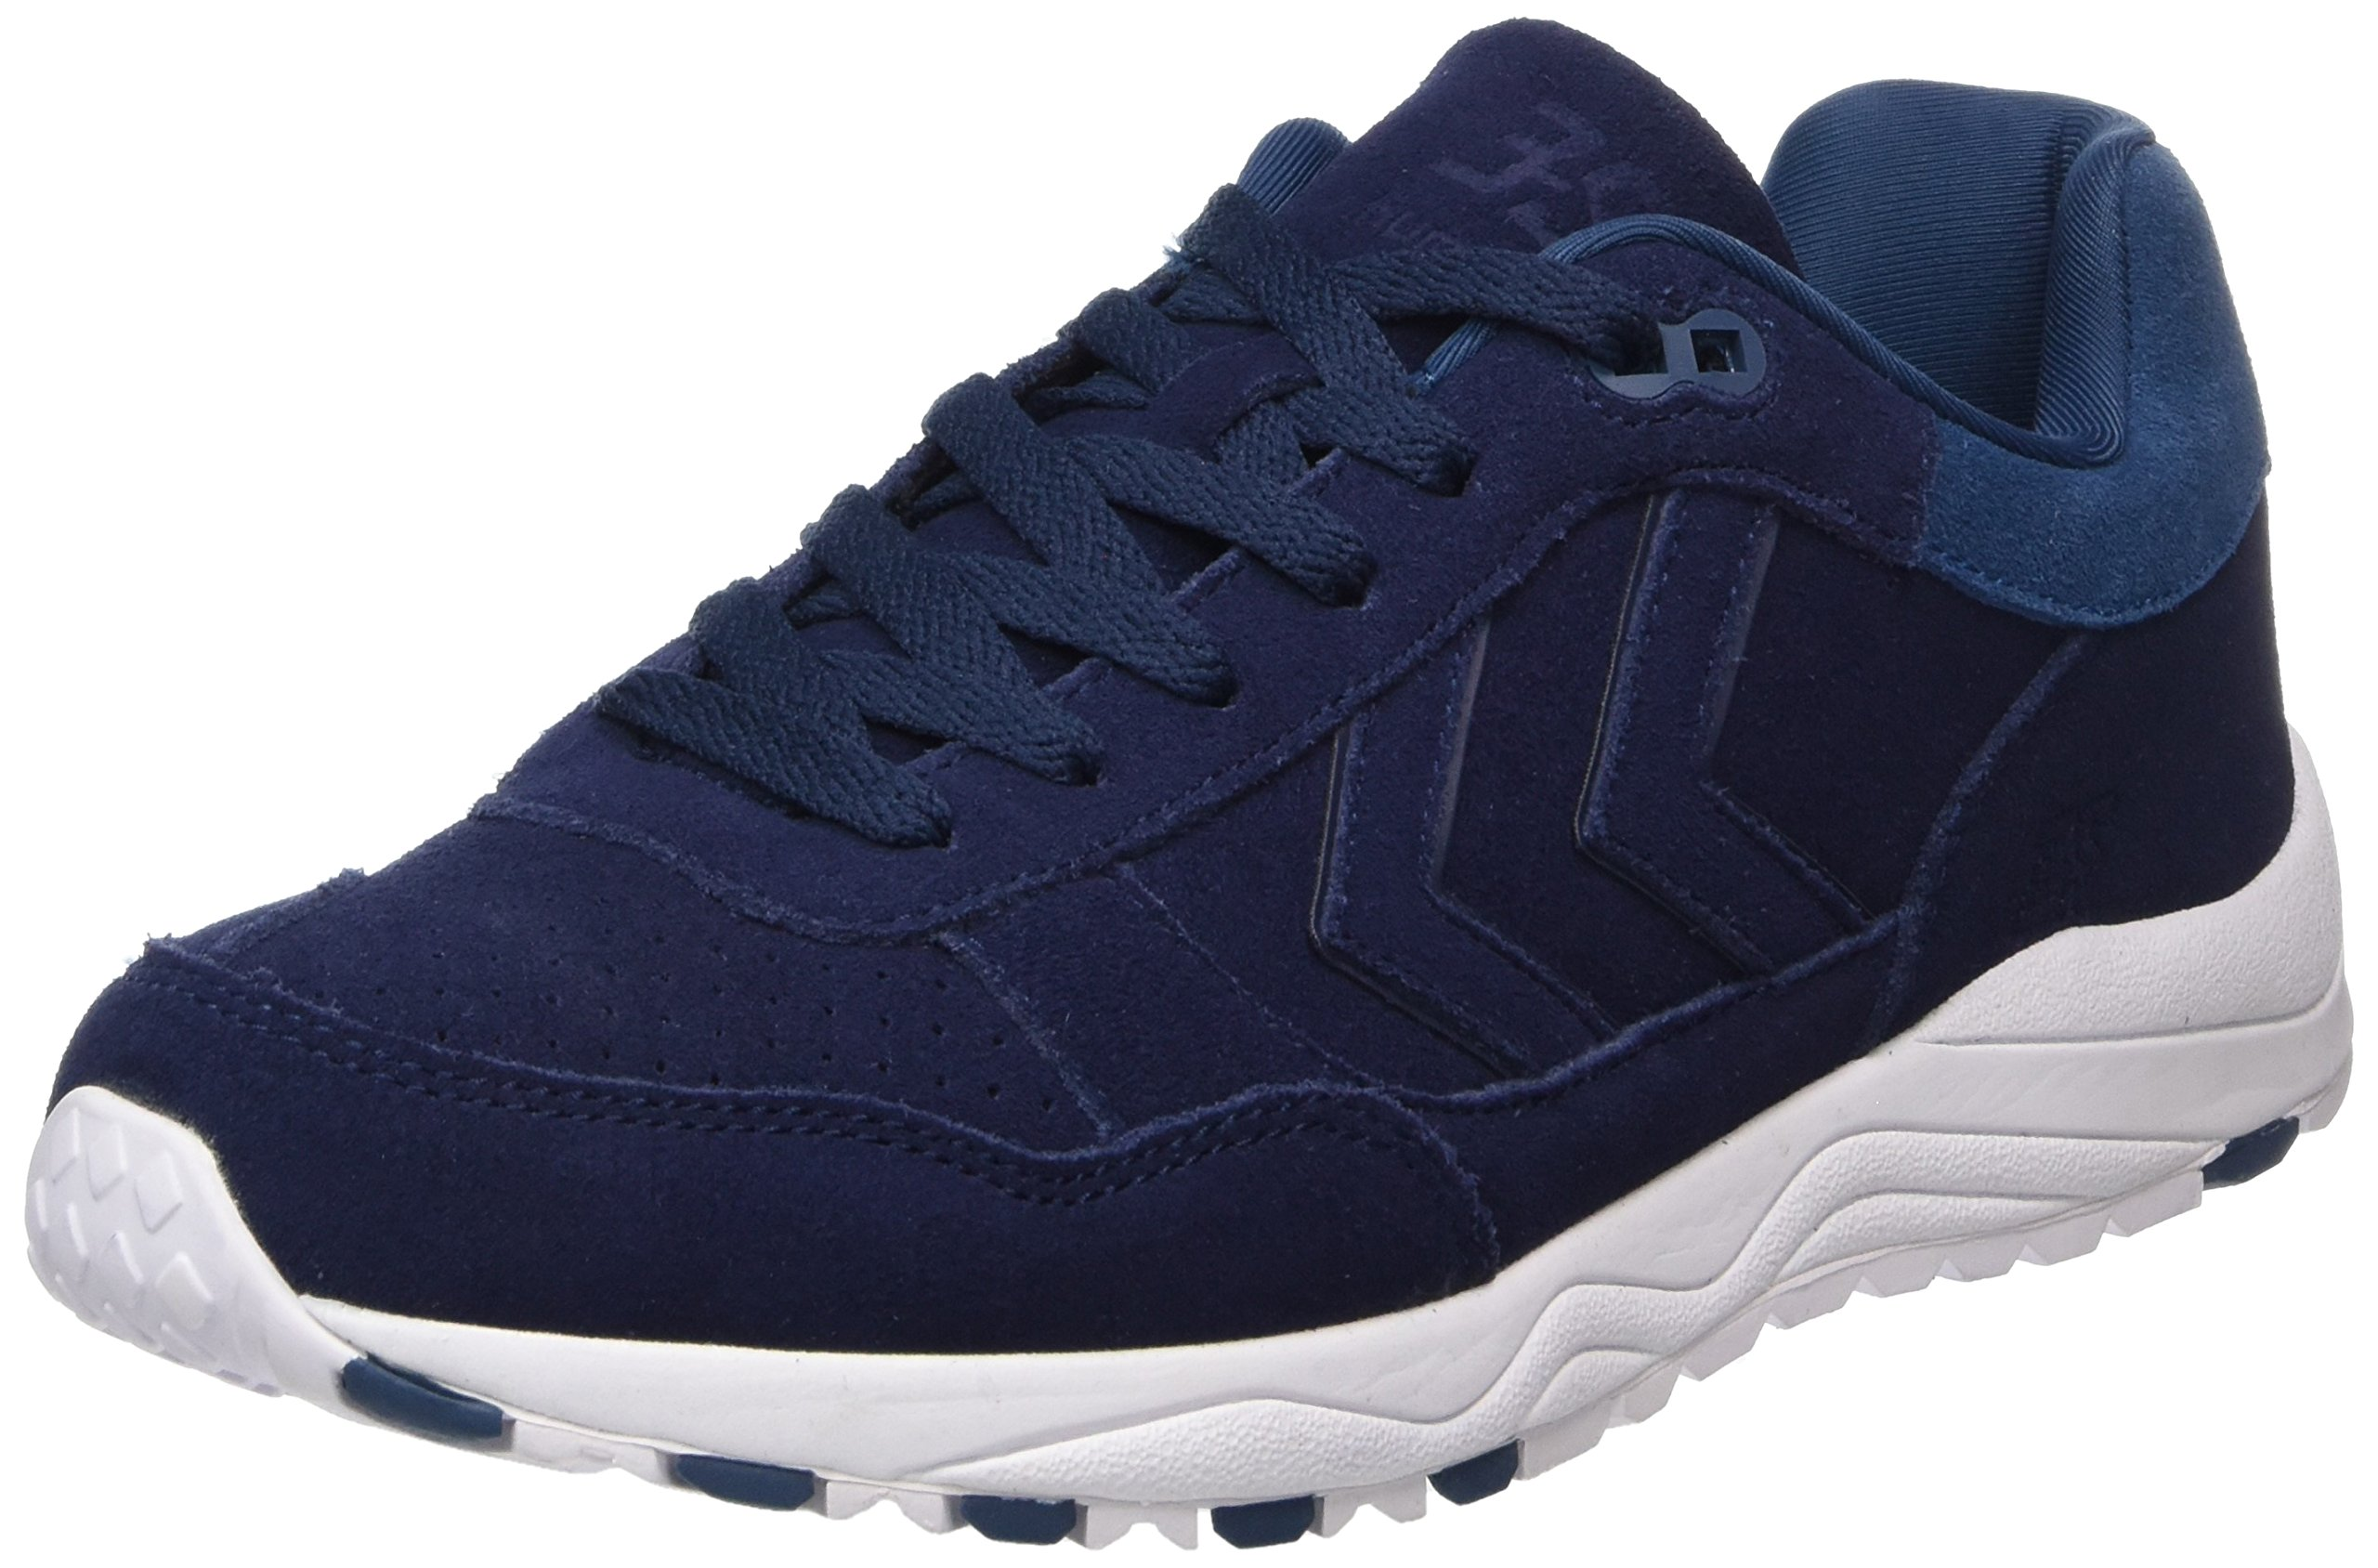 Hummel Unisex Adults' 3-S Suede Trainers, Blue (Peacoat 7666), 8 UK